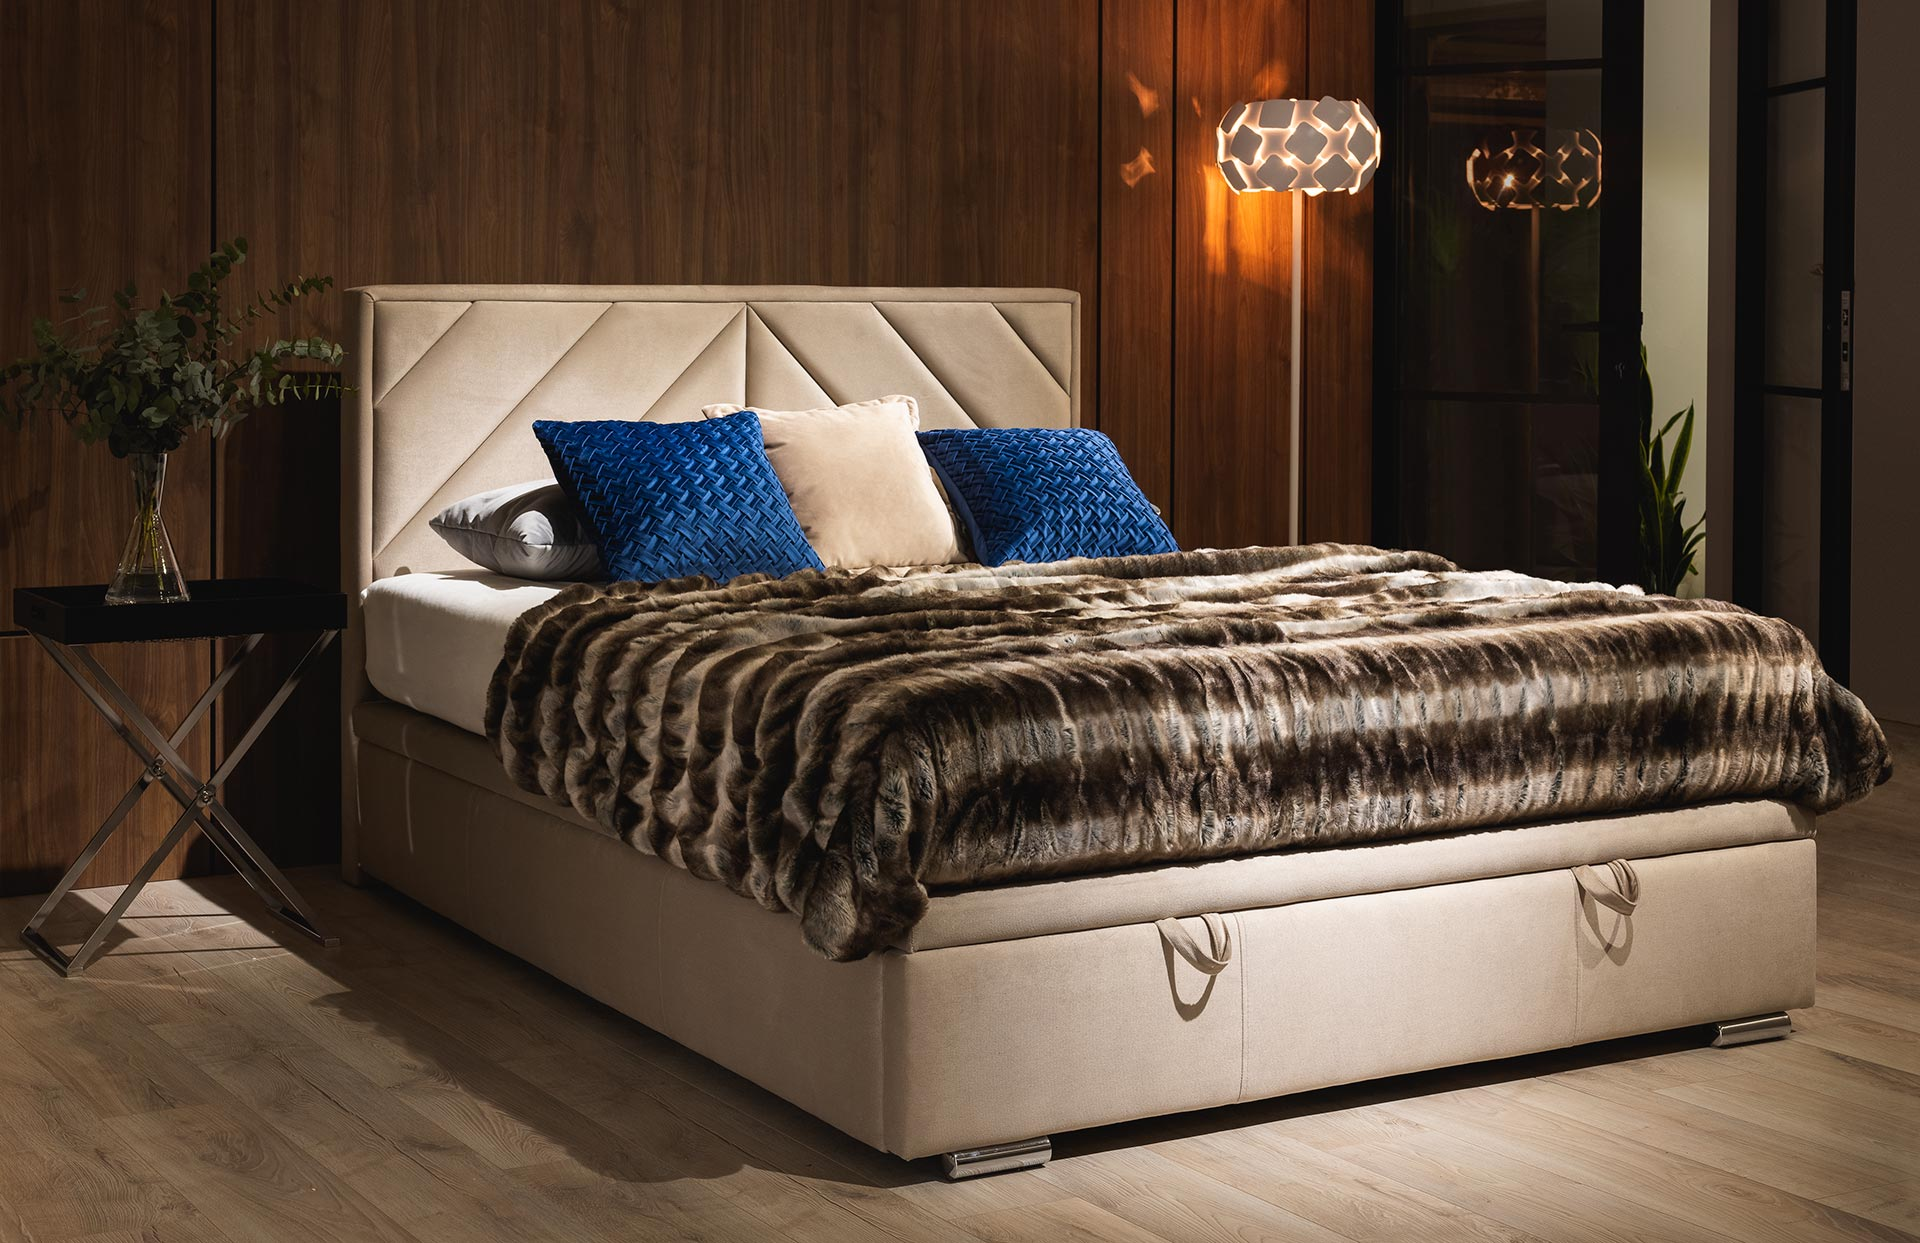 Modern and stylish beds that can catch your eye - get inspired by Smart Furniture online store